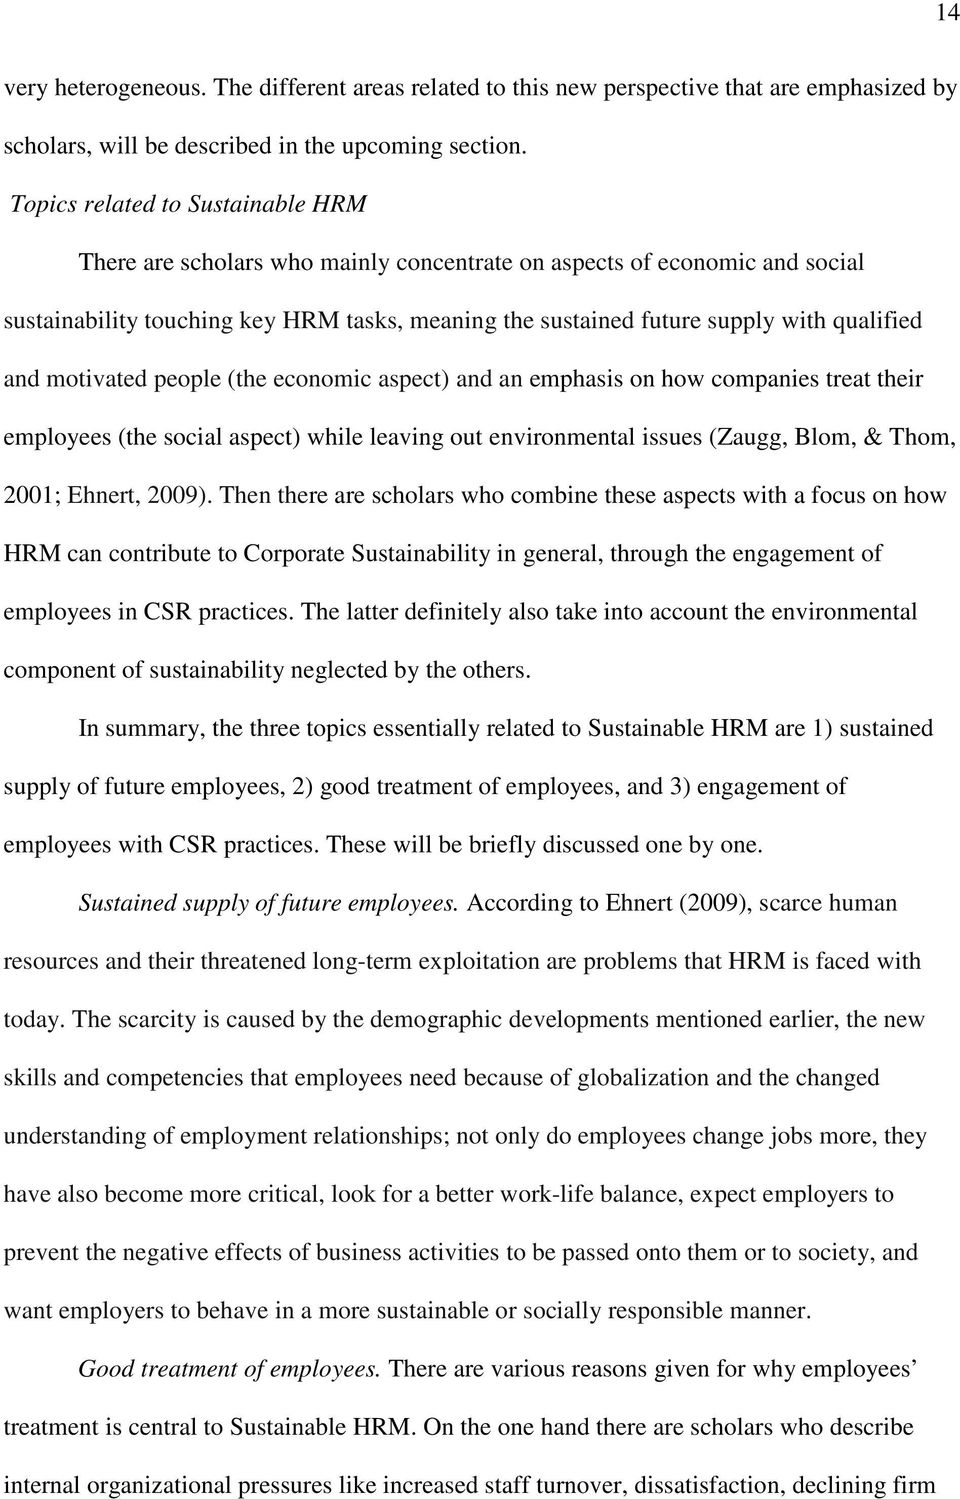 and motivated people (the economic aspect) and an emphasis on how companies treat their employees (the social aspect) while leaving out environmental issues (Zaugg, Blom, & Thom, 2001; Ehnert, 2009).